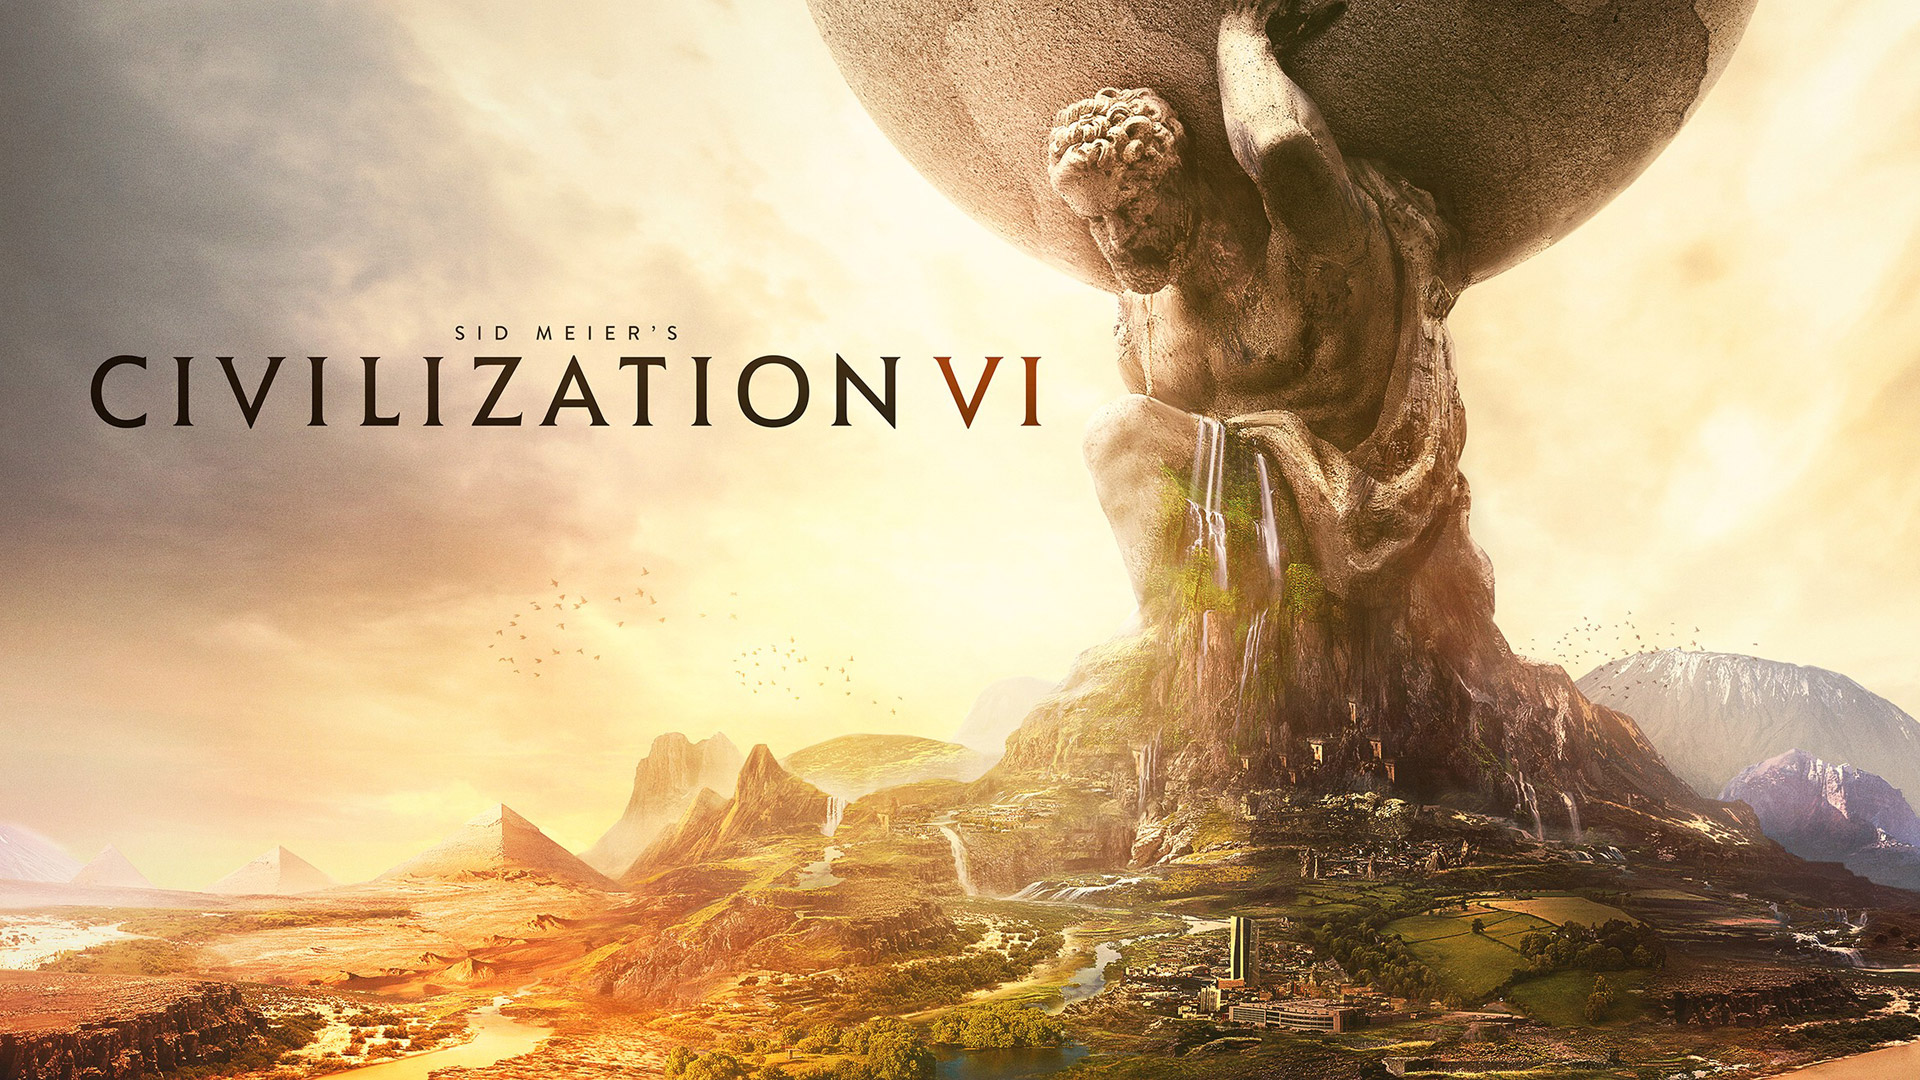 Free Civilization VI Wallpaper in 1920x1080